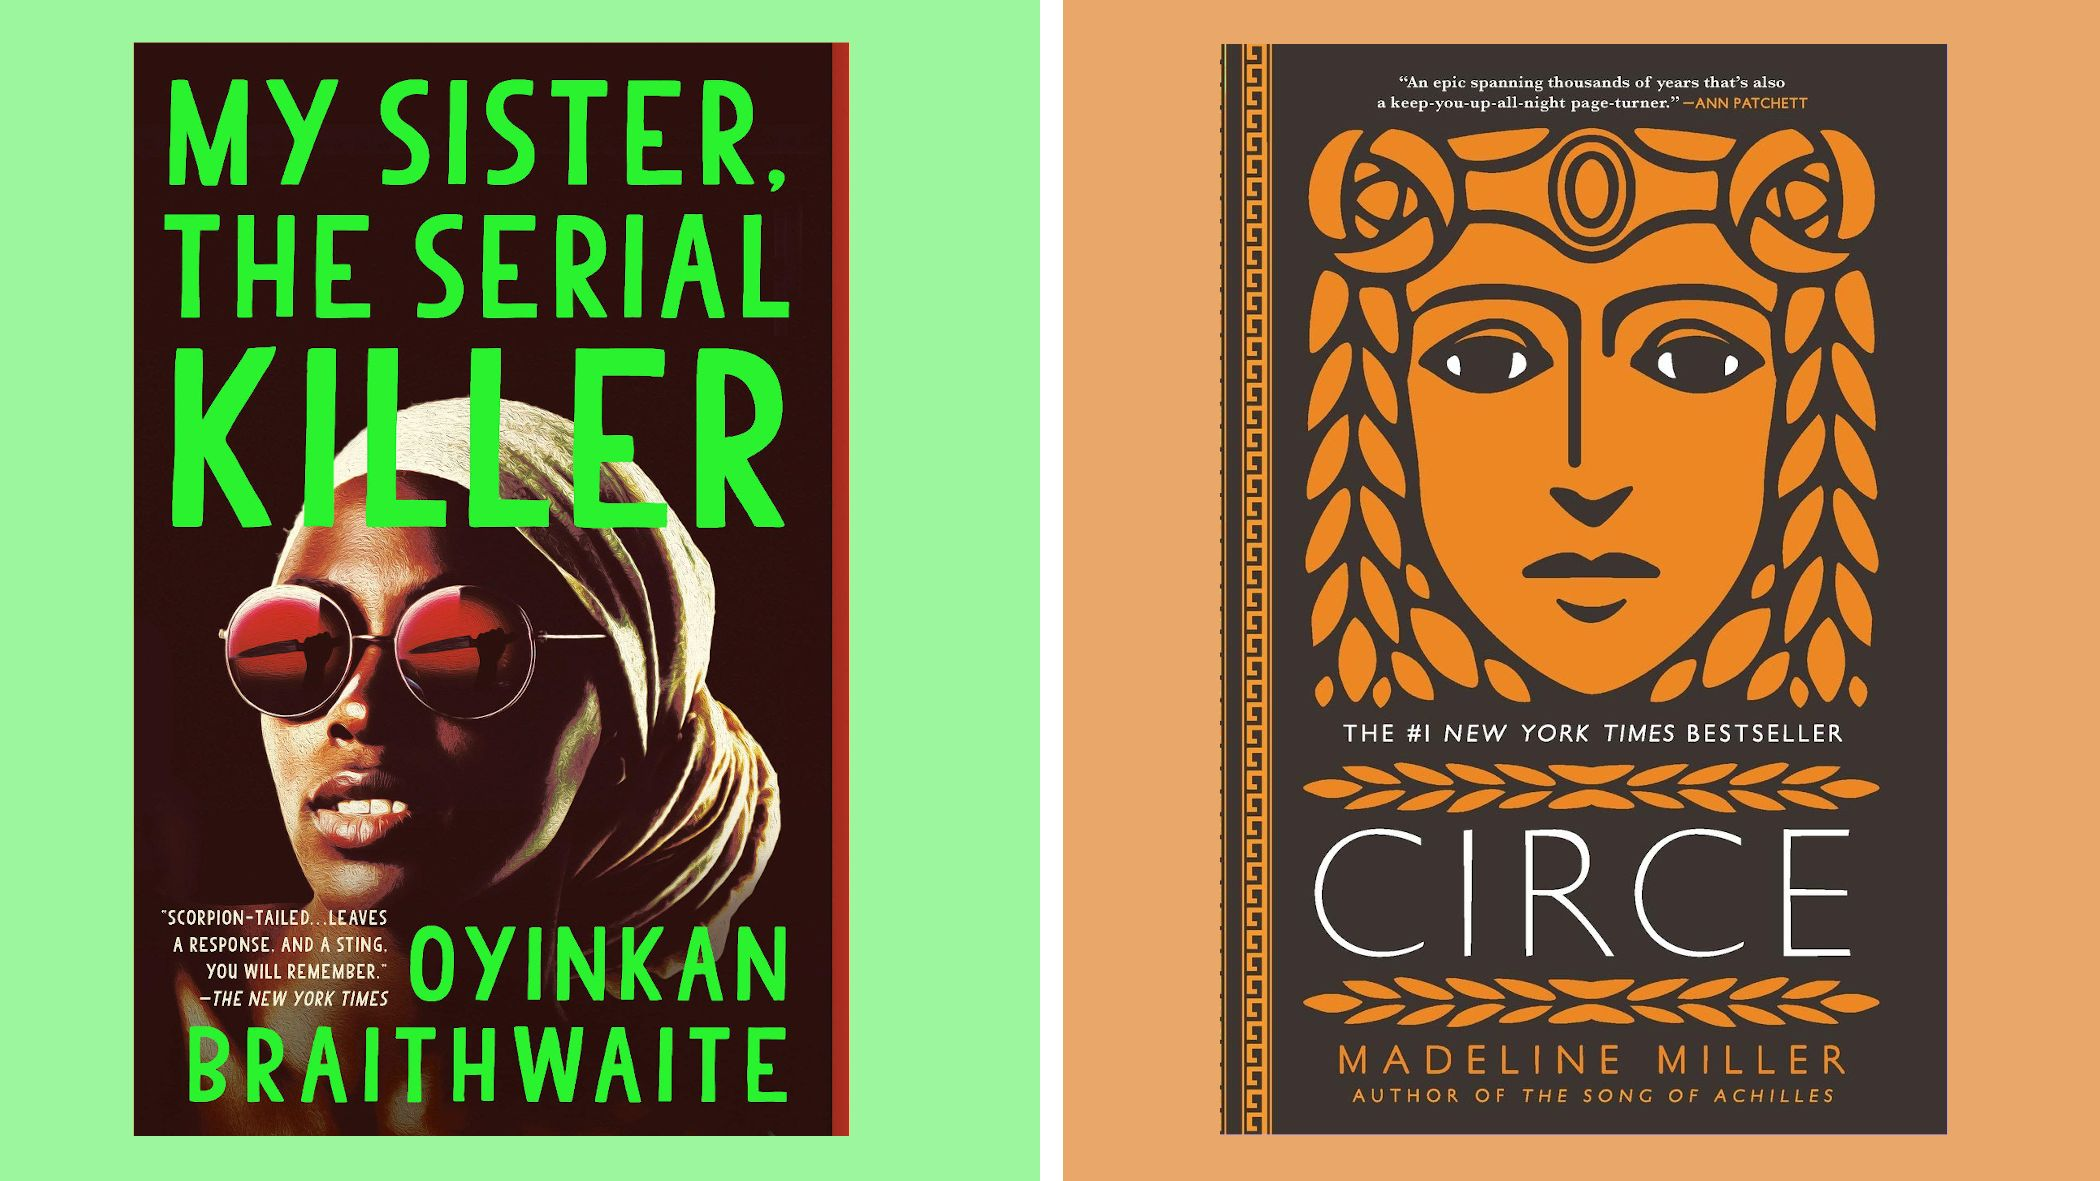 11 Unmissable Books From the Last Five Years